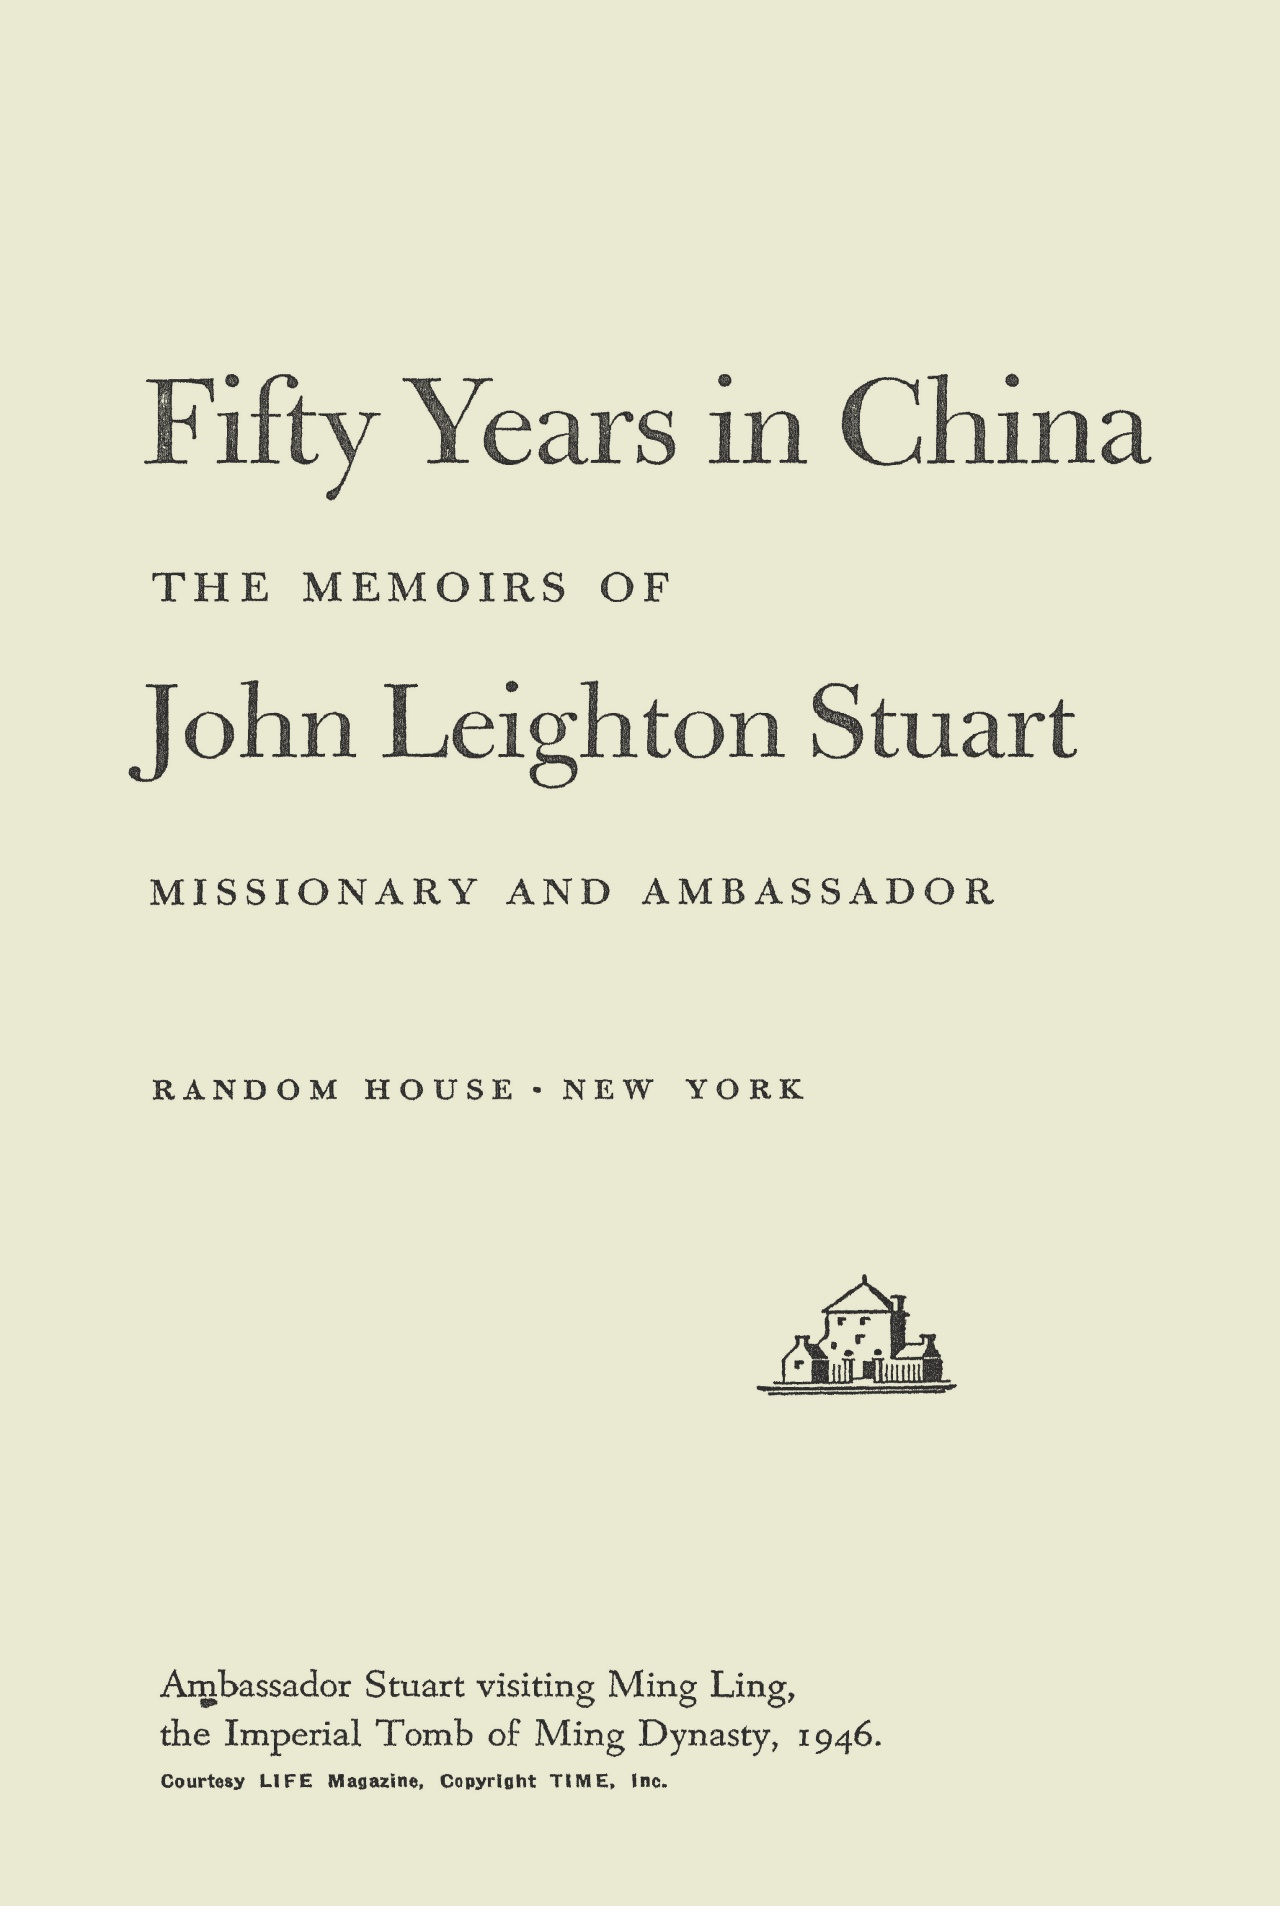 Stuart, John Leighton, Fifty Years in China Title Page.jpg